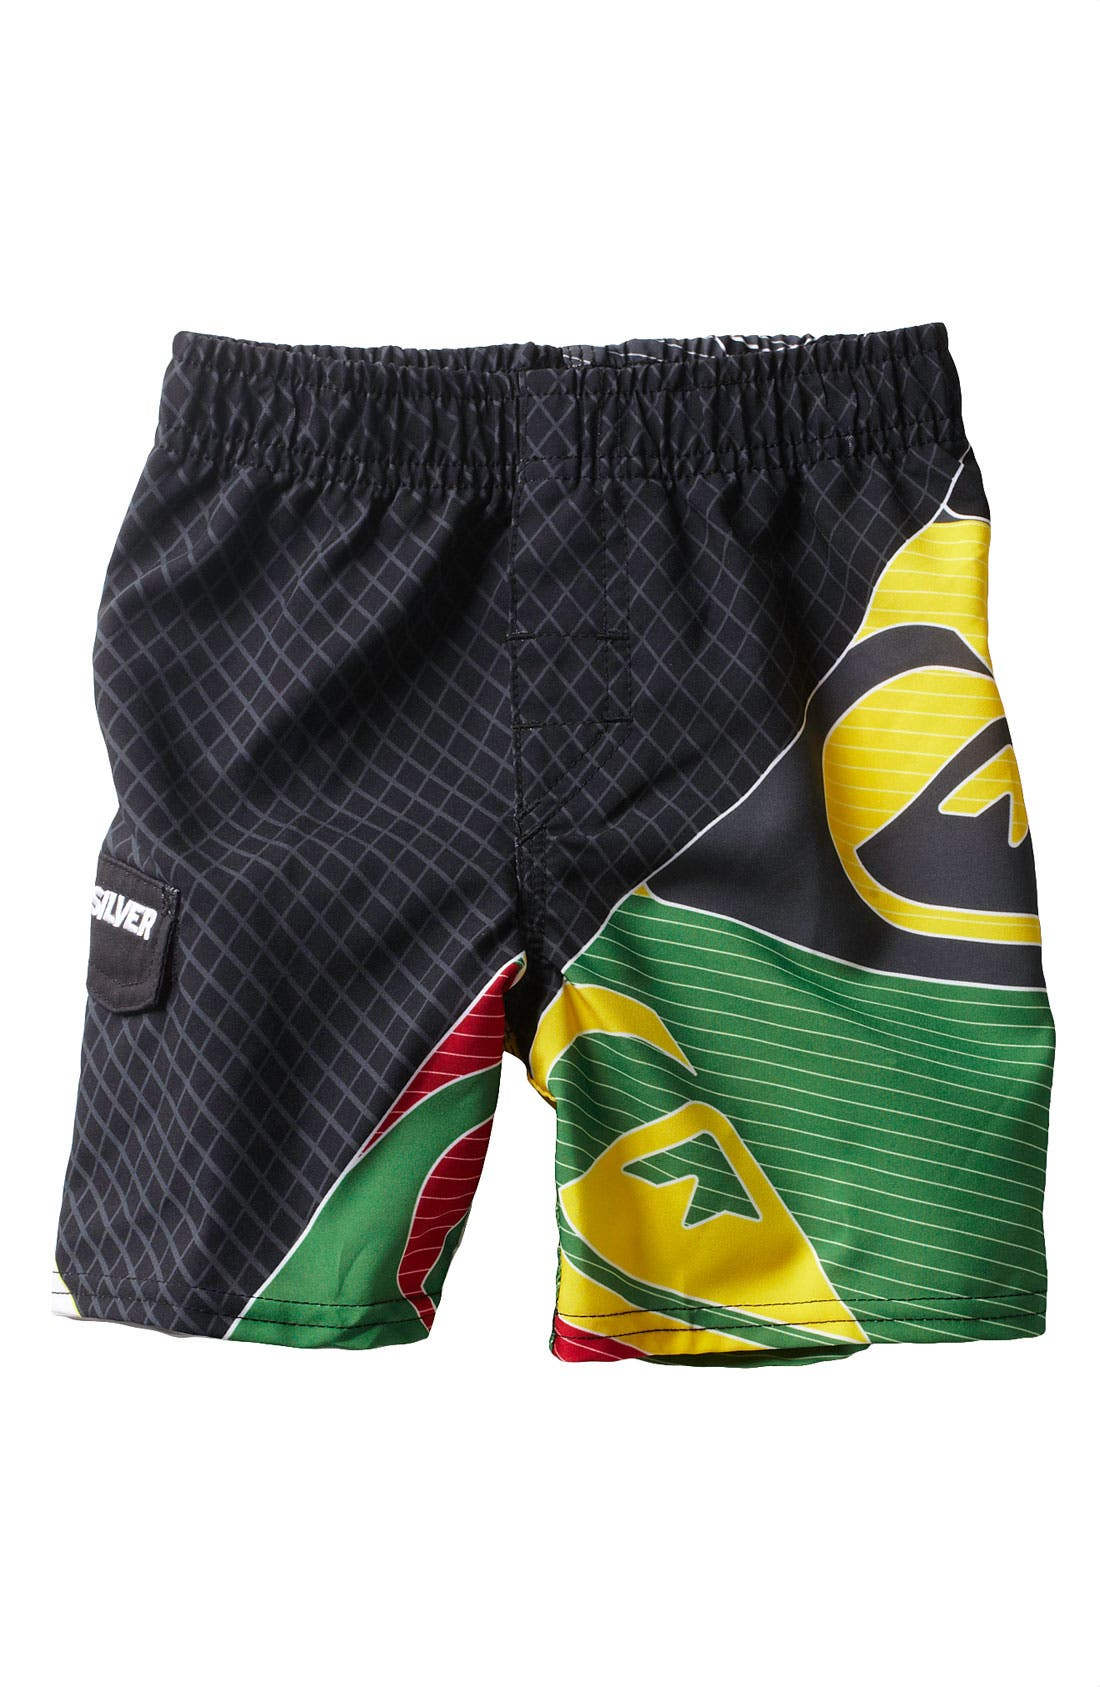 Main Image - Quiksilver 'Finish Line' Volley Shorts (Toddler)